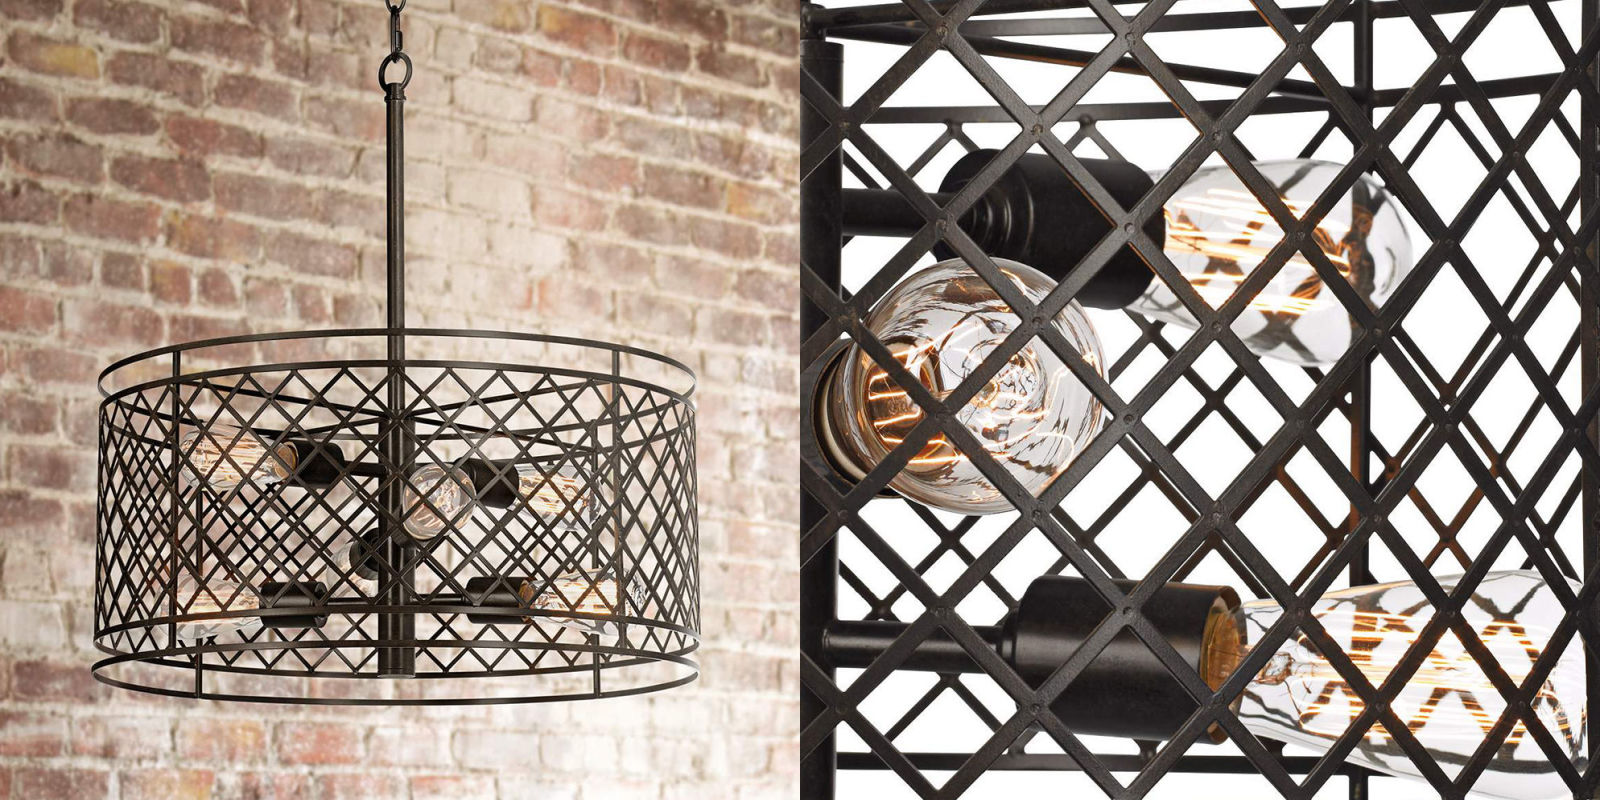 11 Best Wrought Iron Chandeliers in 2017 Iron Chandeliers and – Chandeliers Wrought Iron